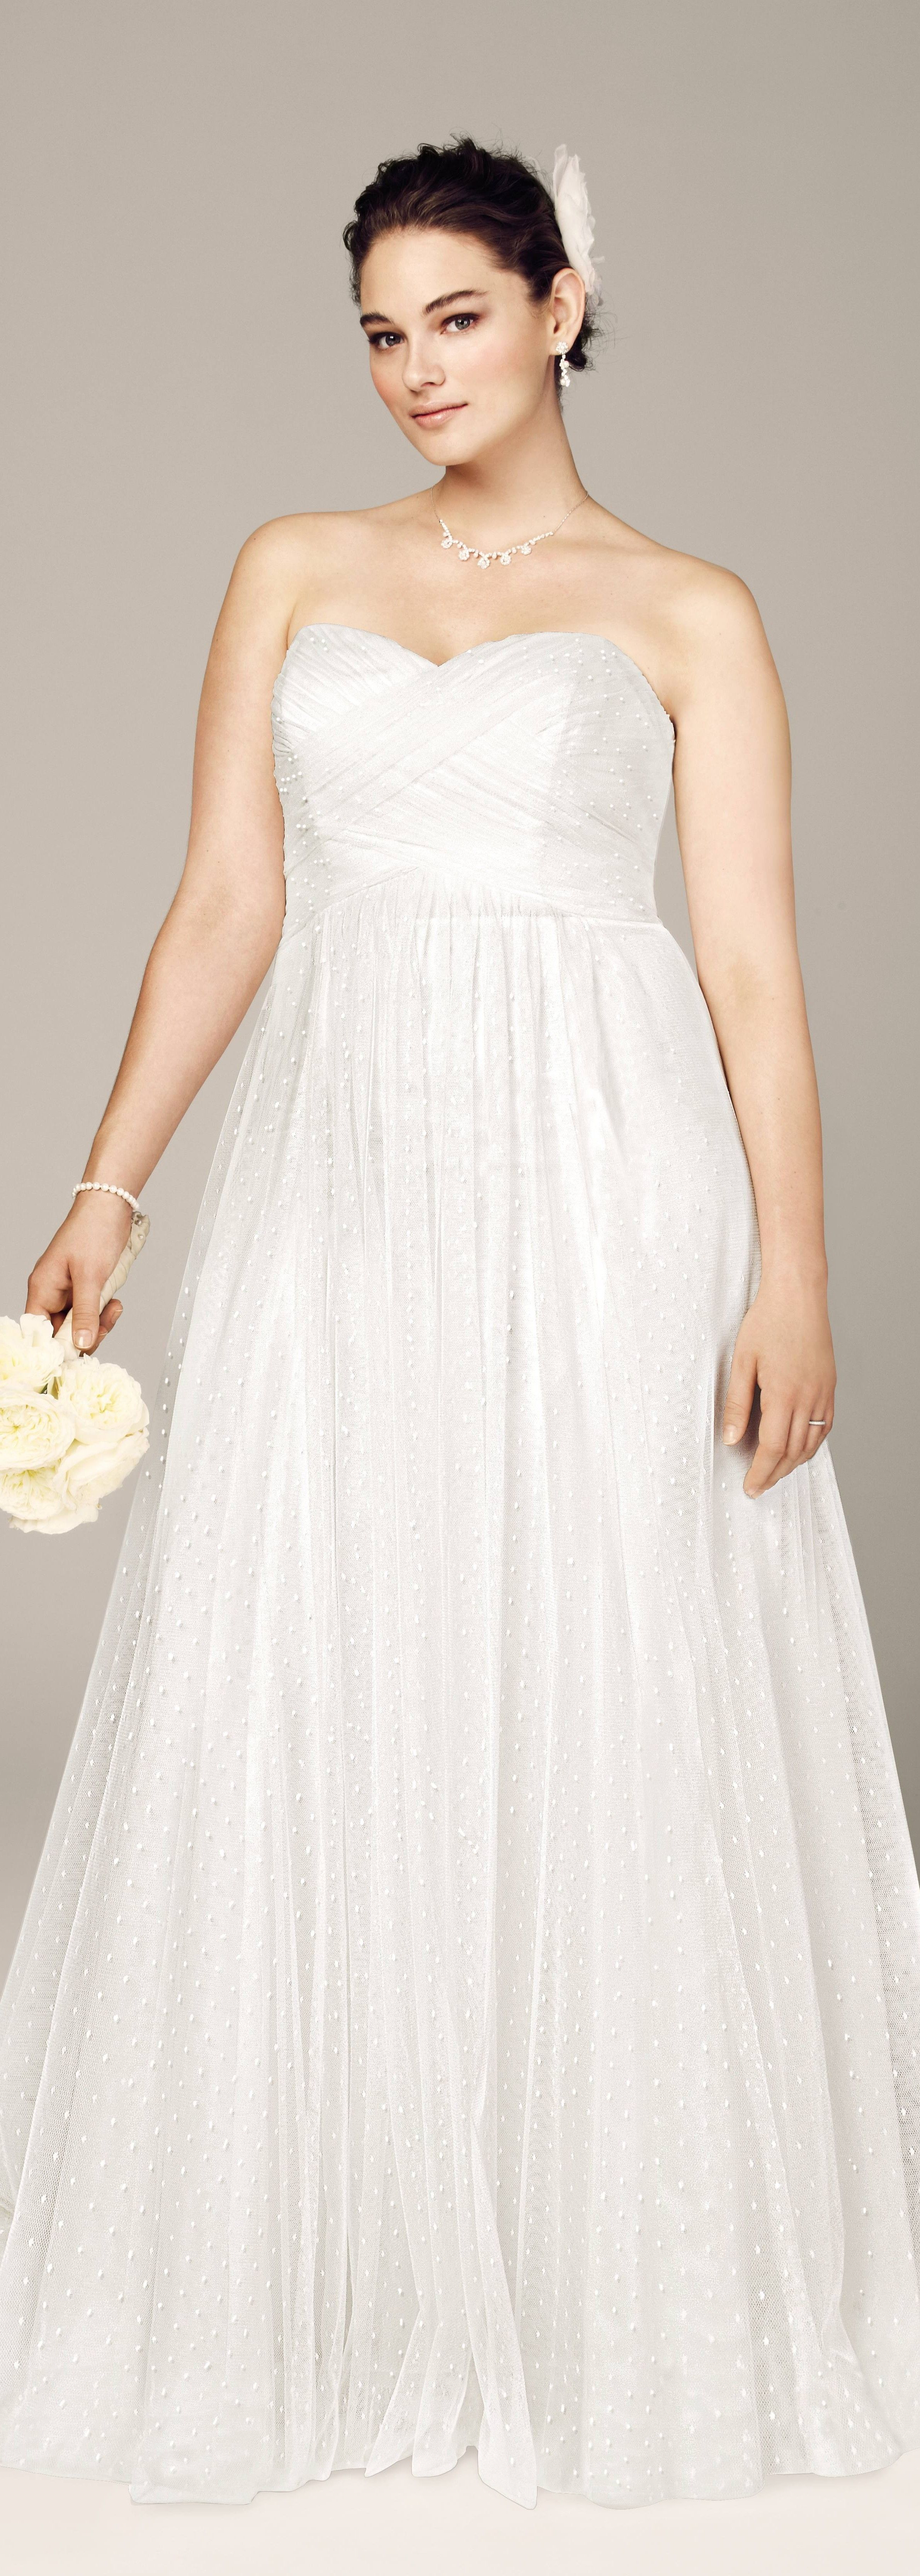 Cute Sweetheart Wedding Dress From Davids Bridal Read My Article About How